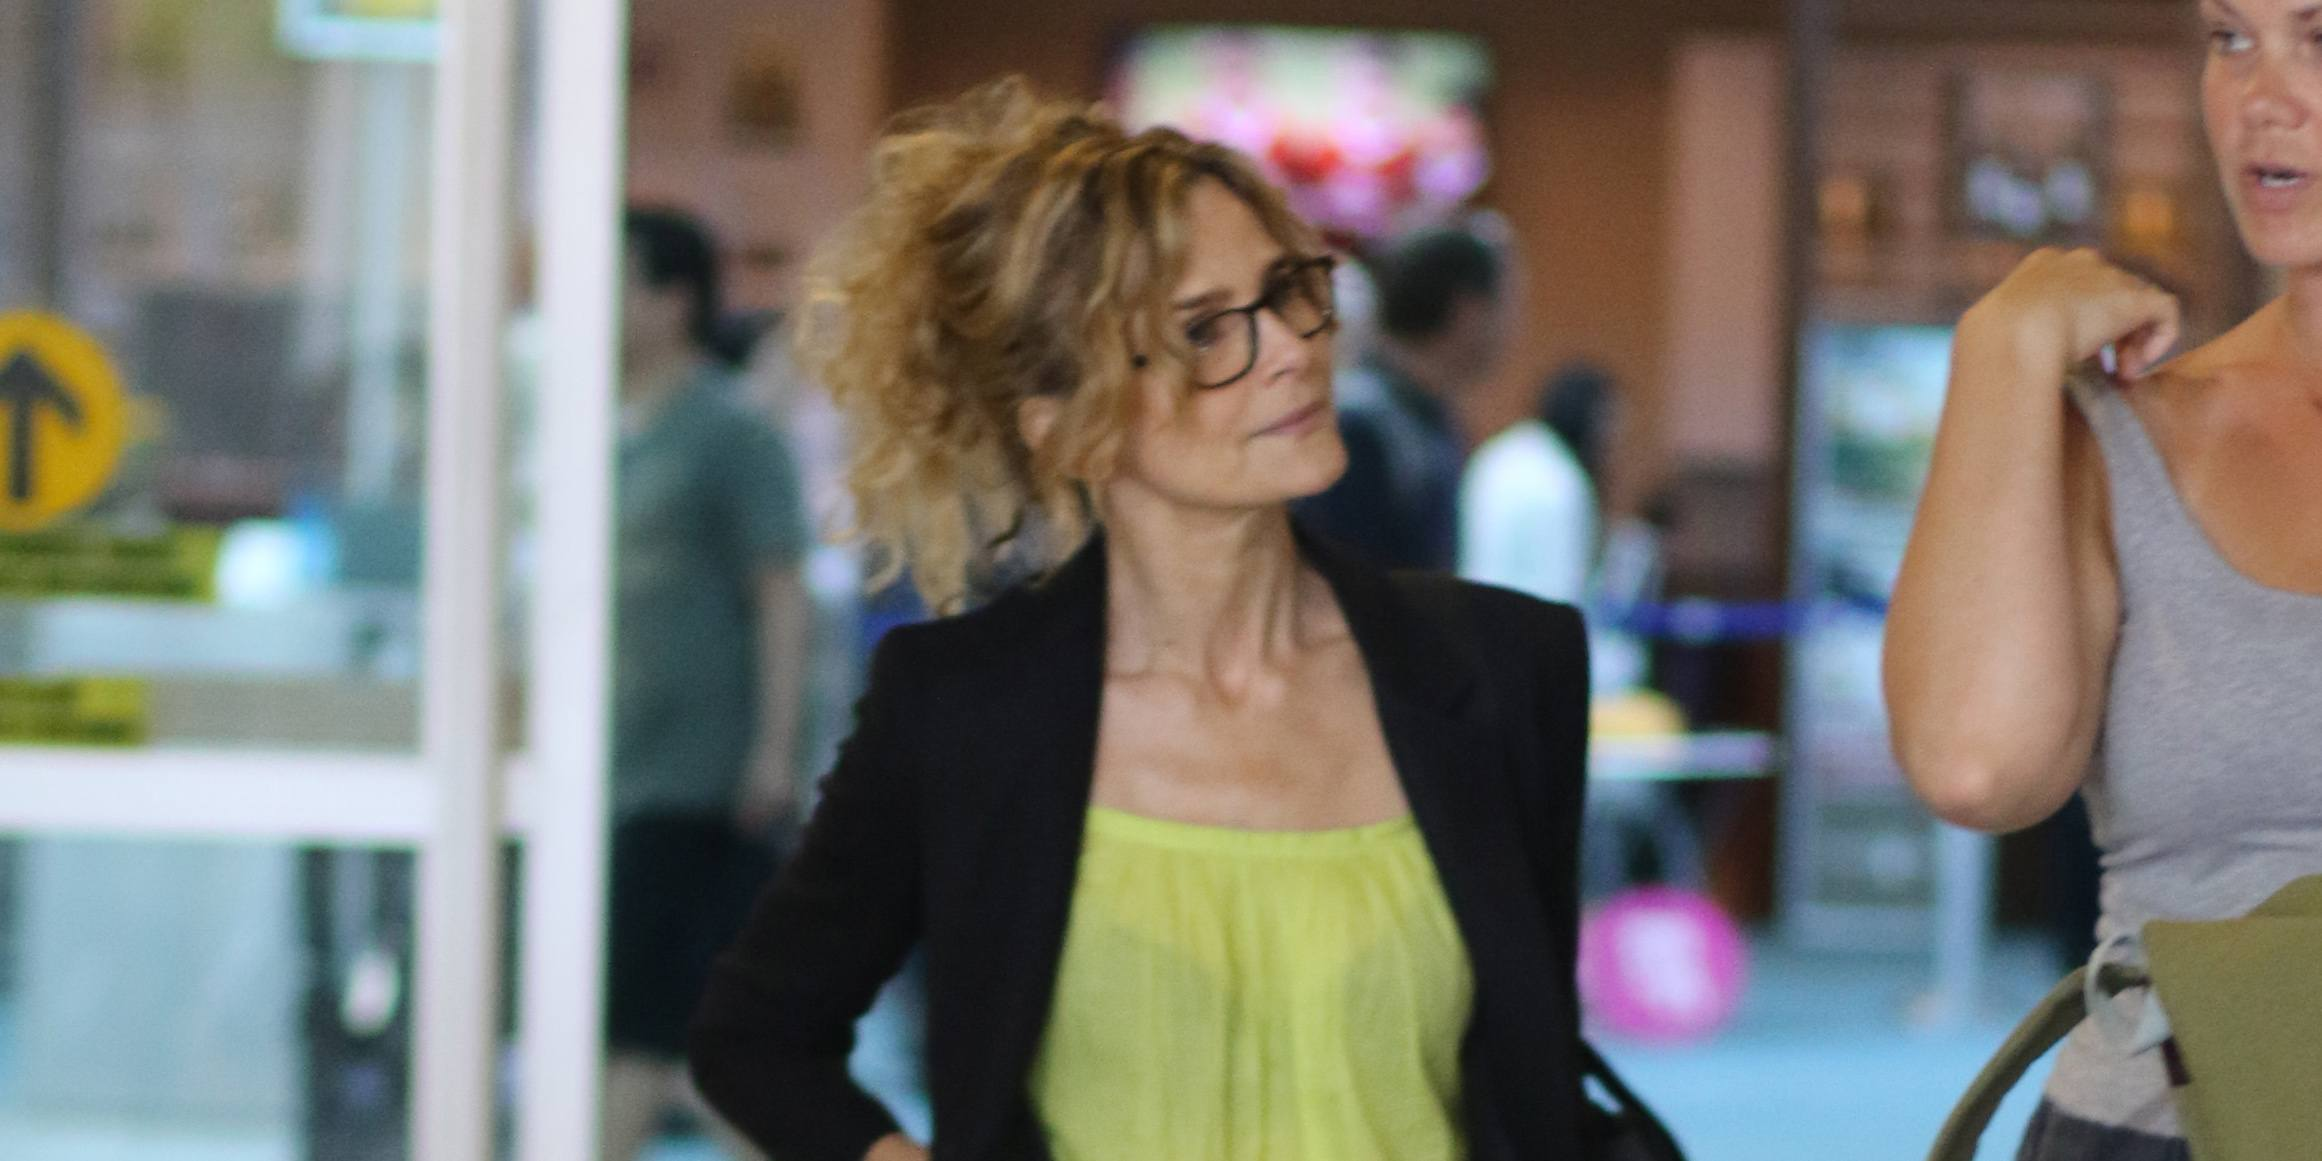 Spotted: Kyra Sedgwick arrives in Vancouver to direct new film (PHOTOS)